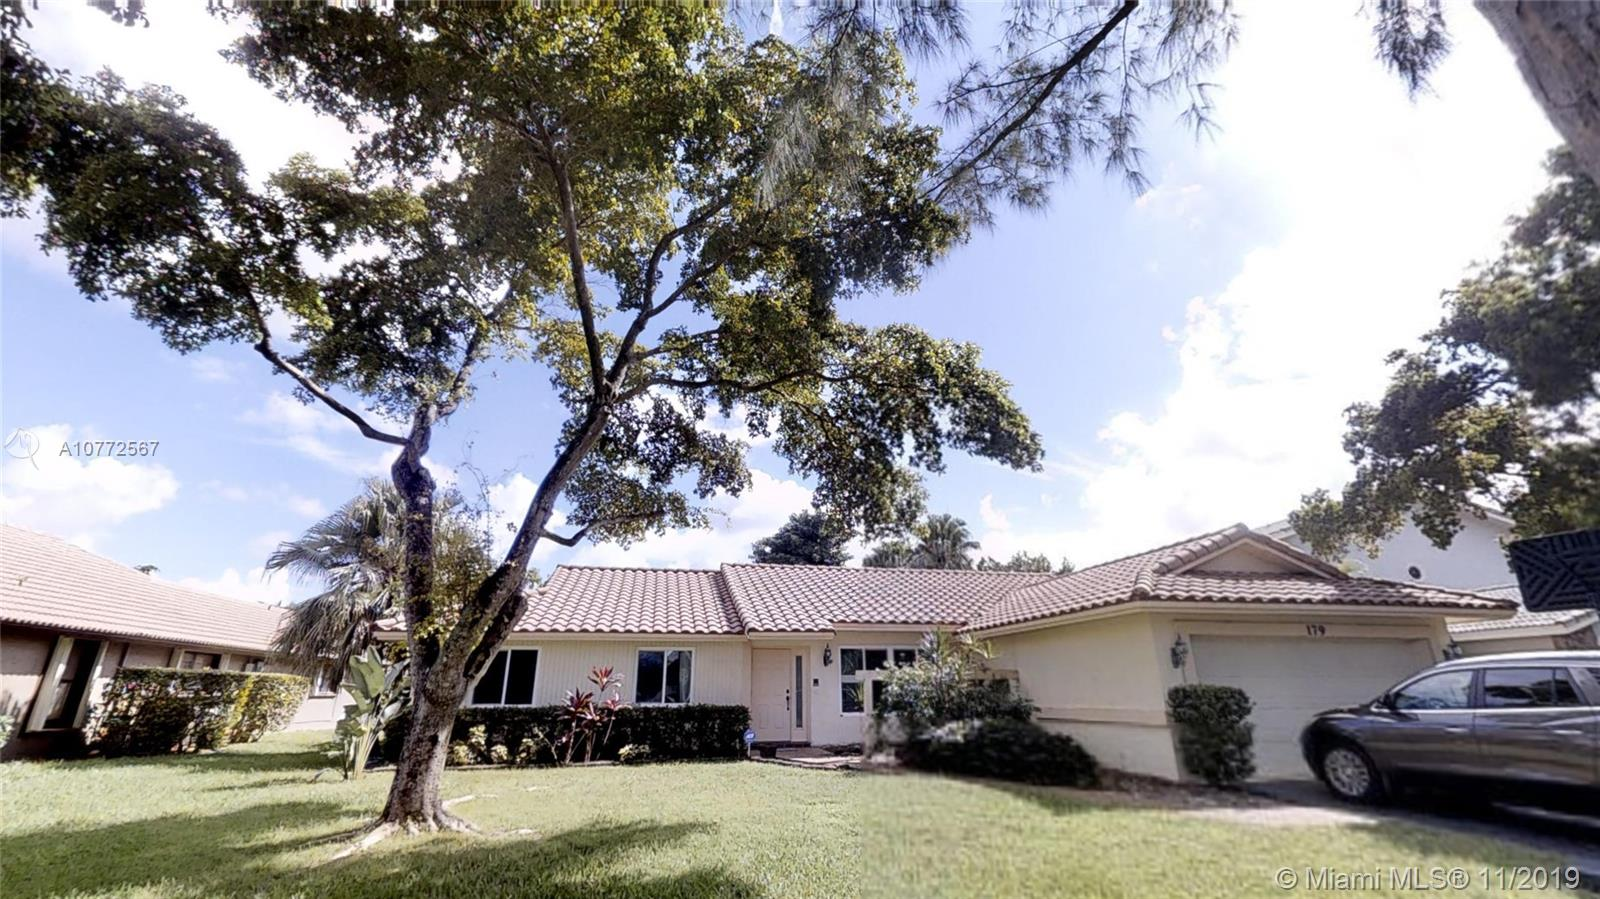 Entertain with your family and friends in this spacious Open floor plan Home with a Pool in the beautiful city of Coral Springs. Quite streets and neighborhood with no HOA. This 4 bedroom-perfect sized  with 2 bathrooms and both cabana to have easy access to the fenced pool area with a private backyard to enjoy yourself and relax. The whole house has hurricane impact windows with some doors as well! Seamless gutters, stainless steel appliances, Laminated wood flooring in the living and  family room, Tile in the eating kitchen,Eating Counter  and formal dinning room. Oversize 2 car garage walk-in distance to top schools with central location to local shops.